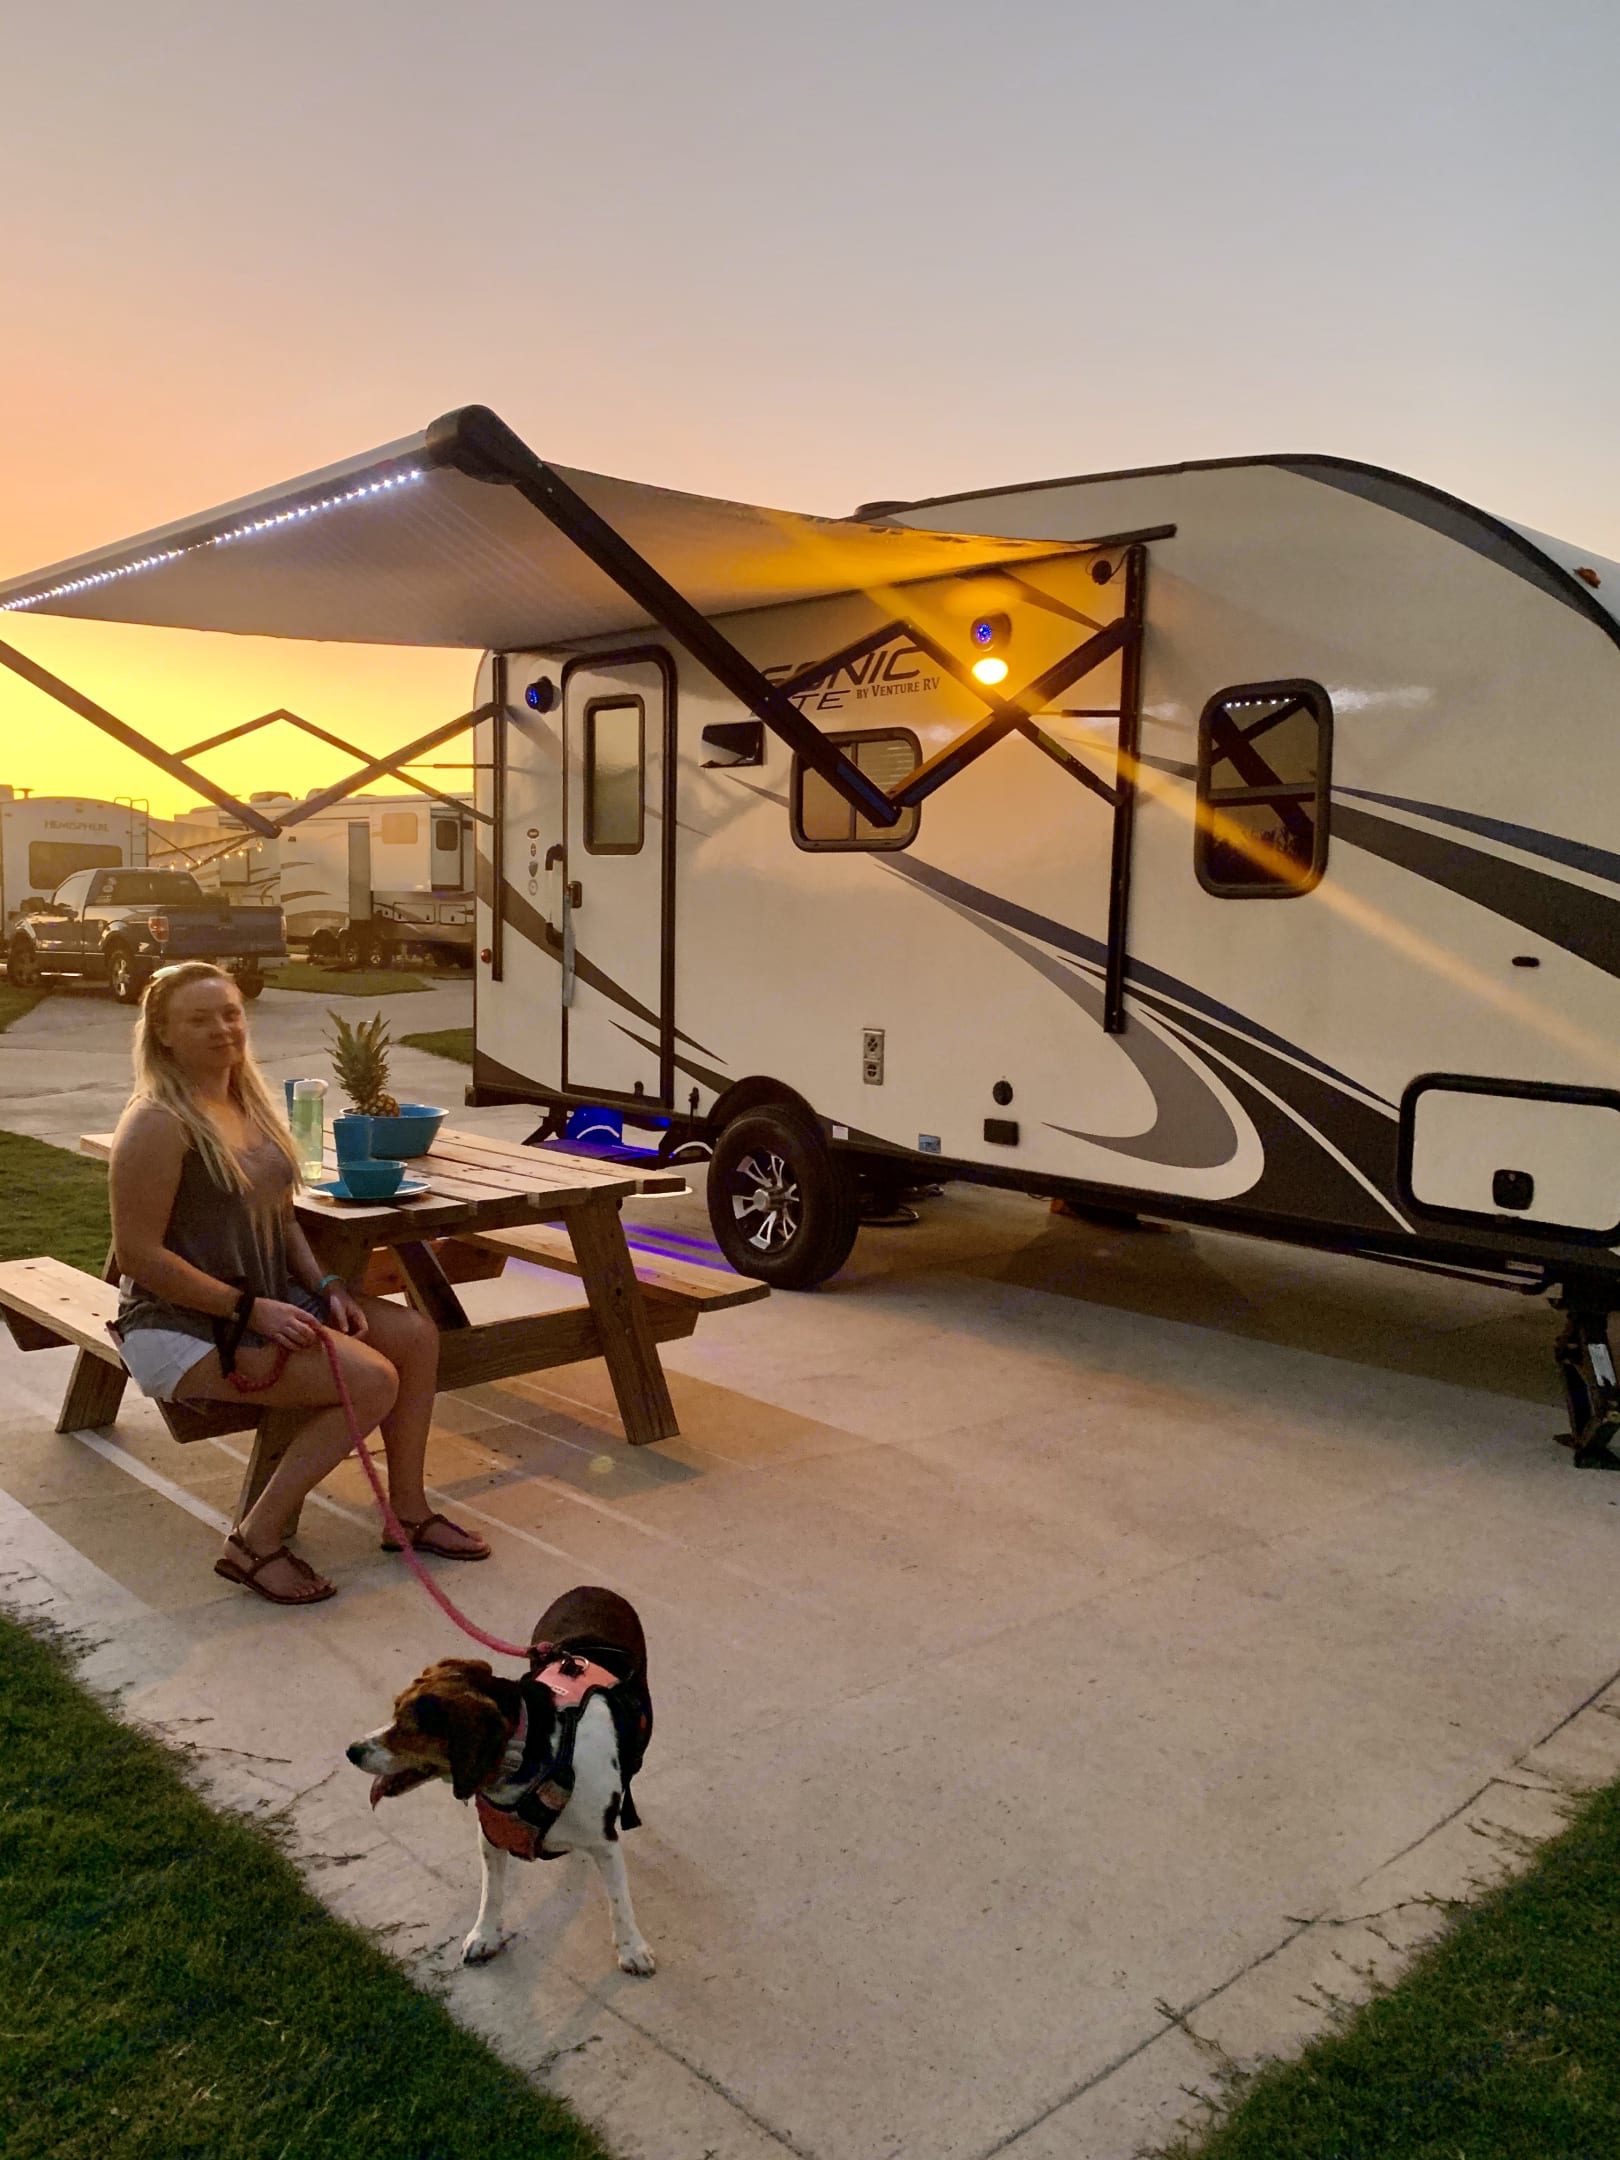 Automatic Awning Keeps it cool on sunny days. Venture Rv Sonic Lite 2017